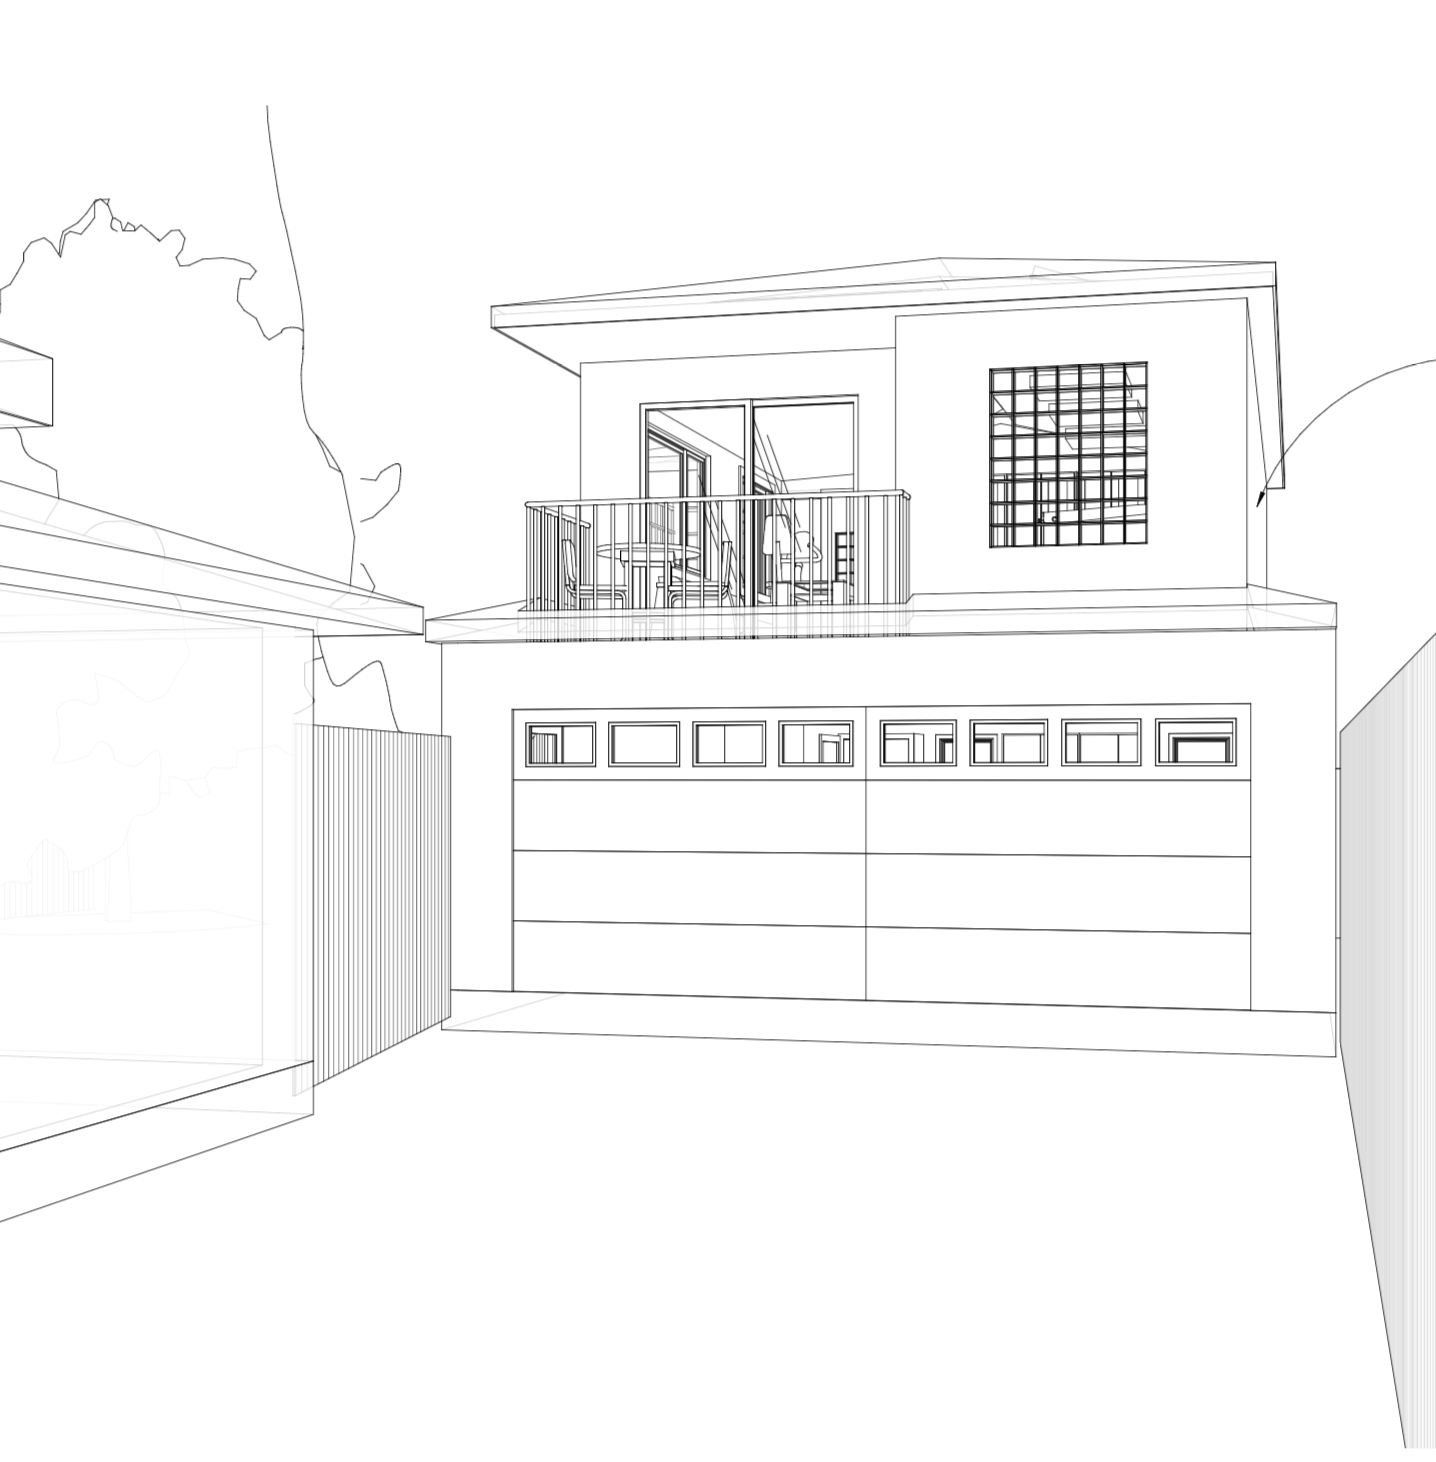 2-story-glass-block-studio-exterior-perspective.png